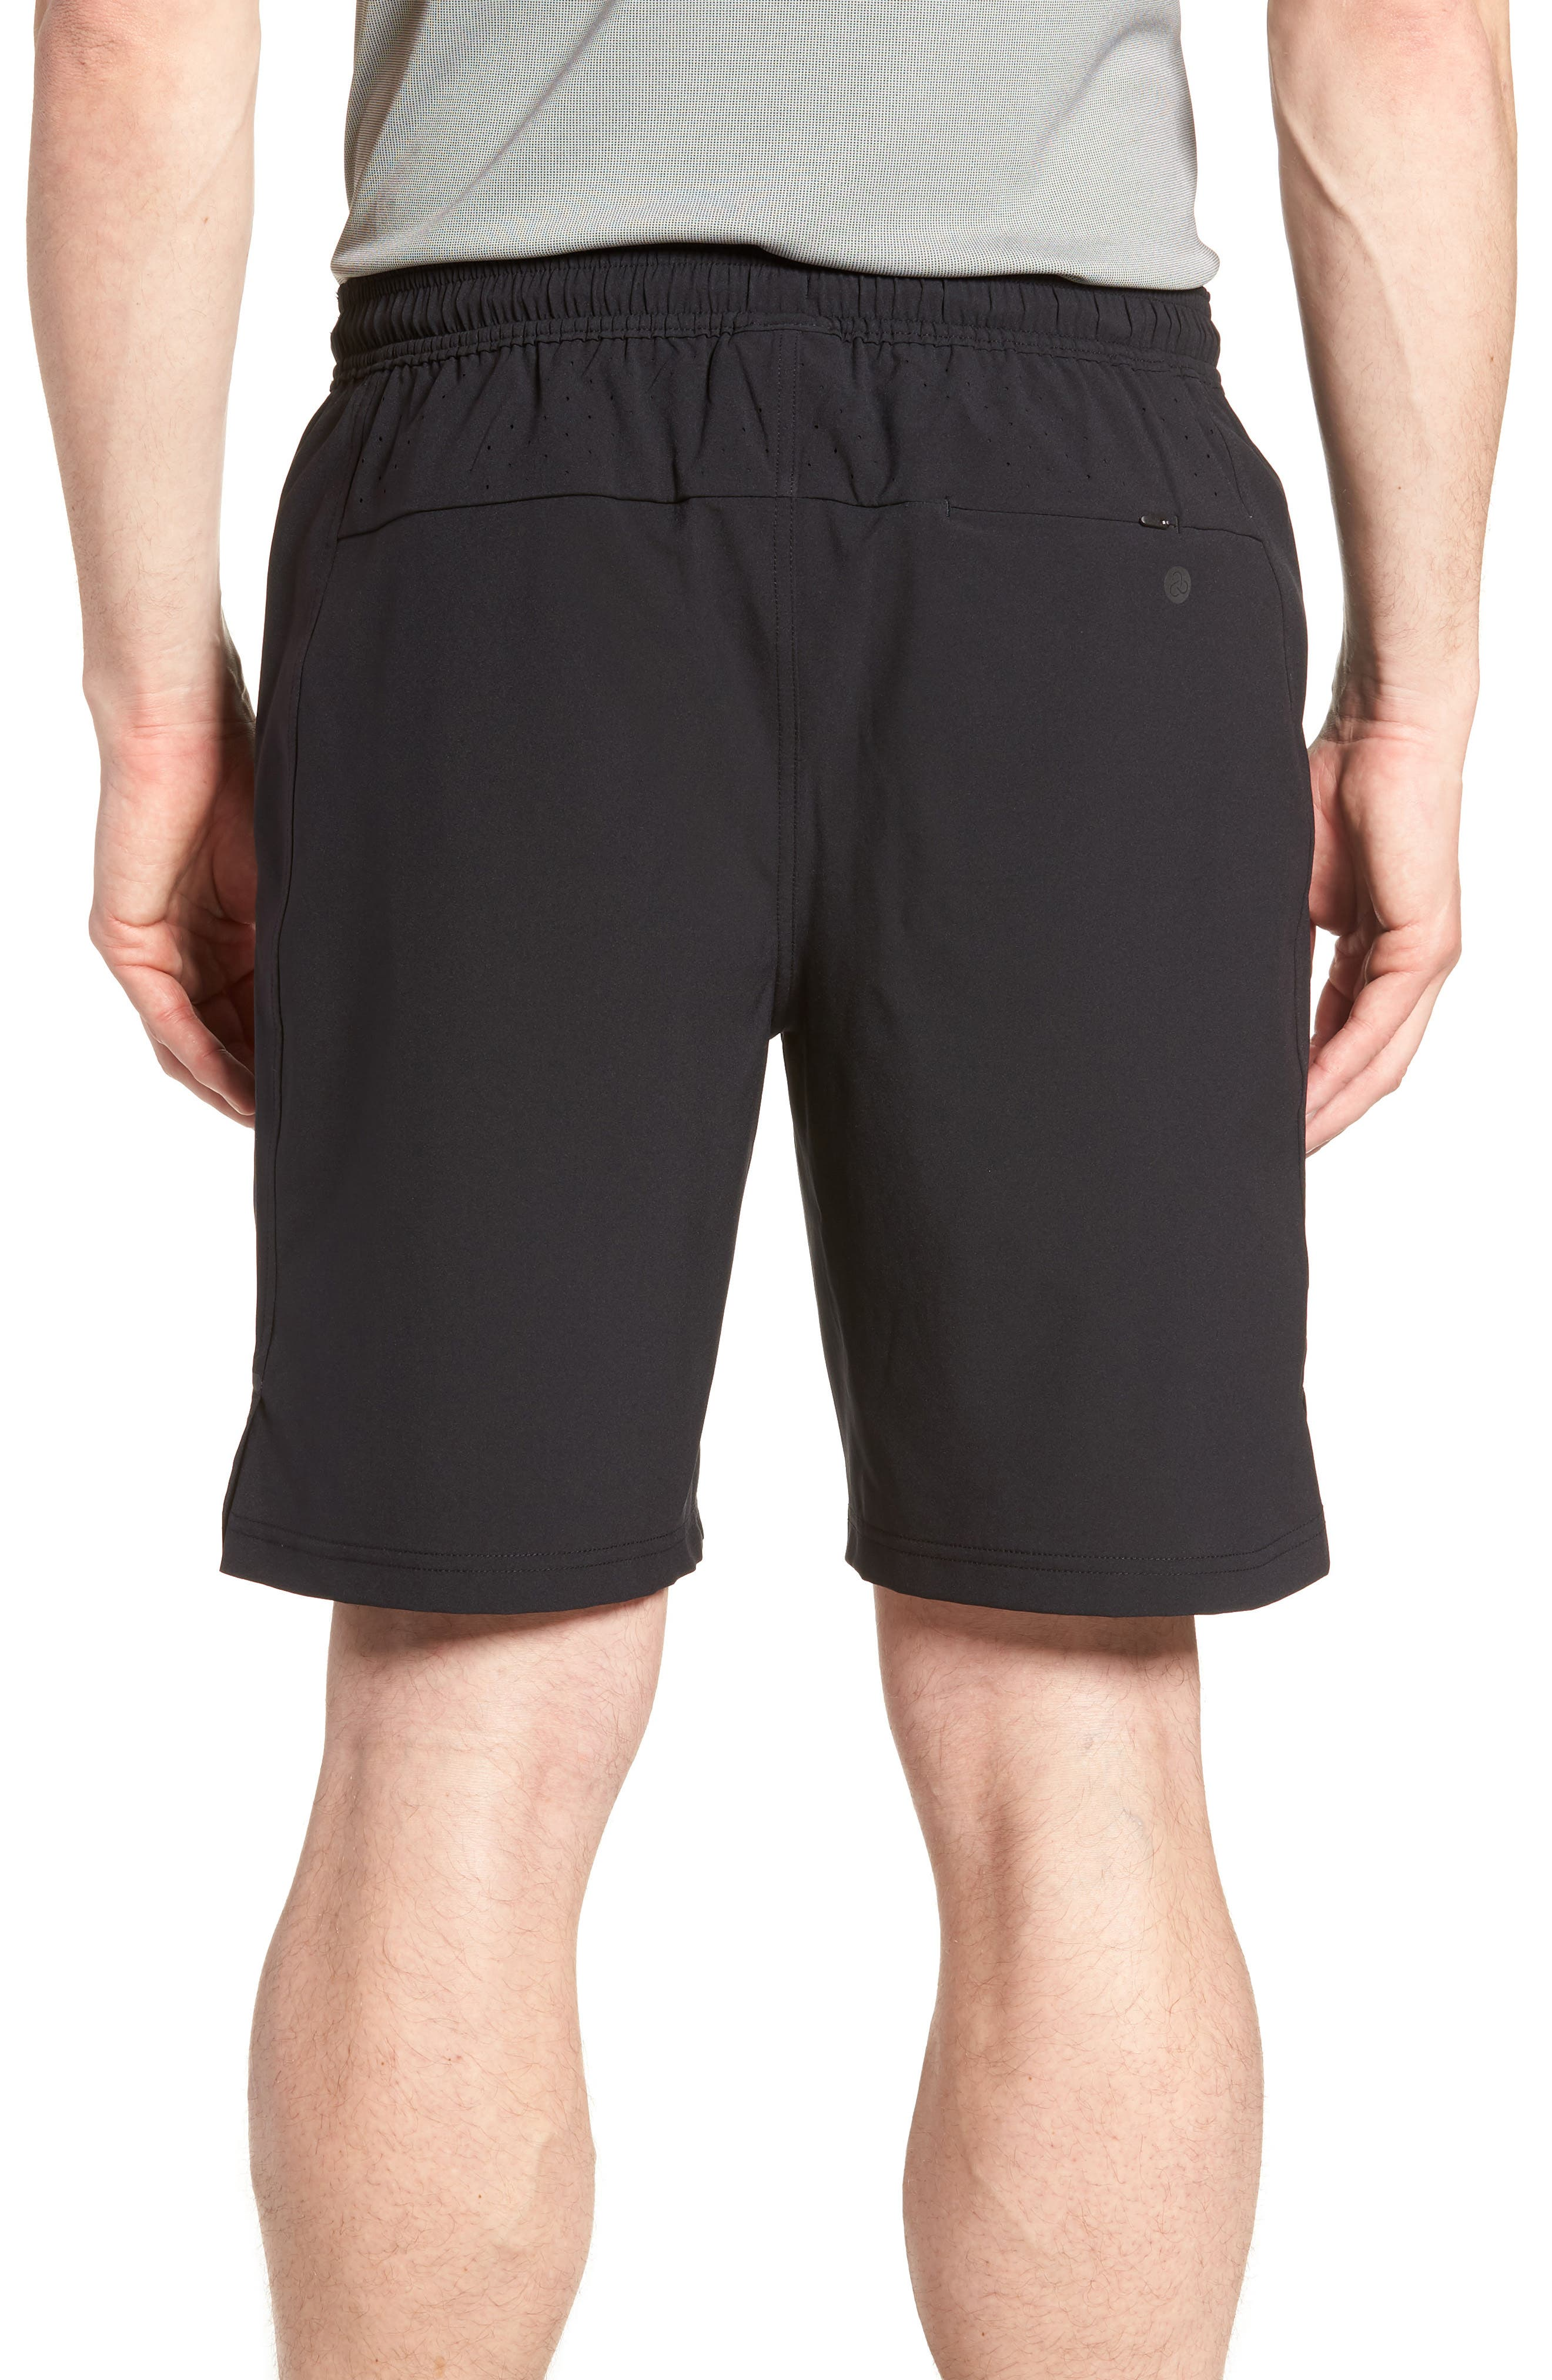 ZELLA, Graphite Perforated Shorts, Alternate thumbnail 2, color, BLACK